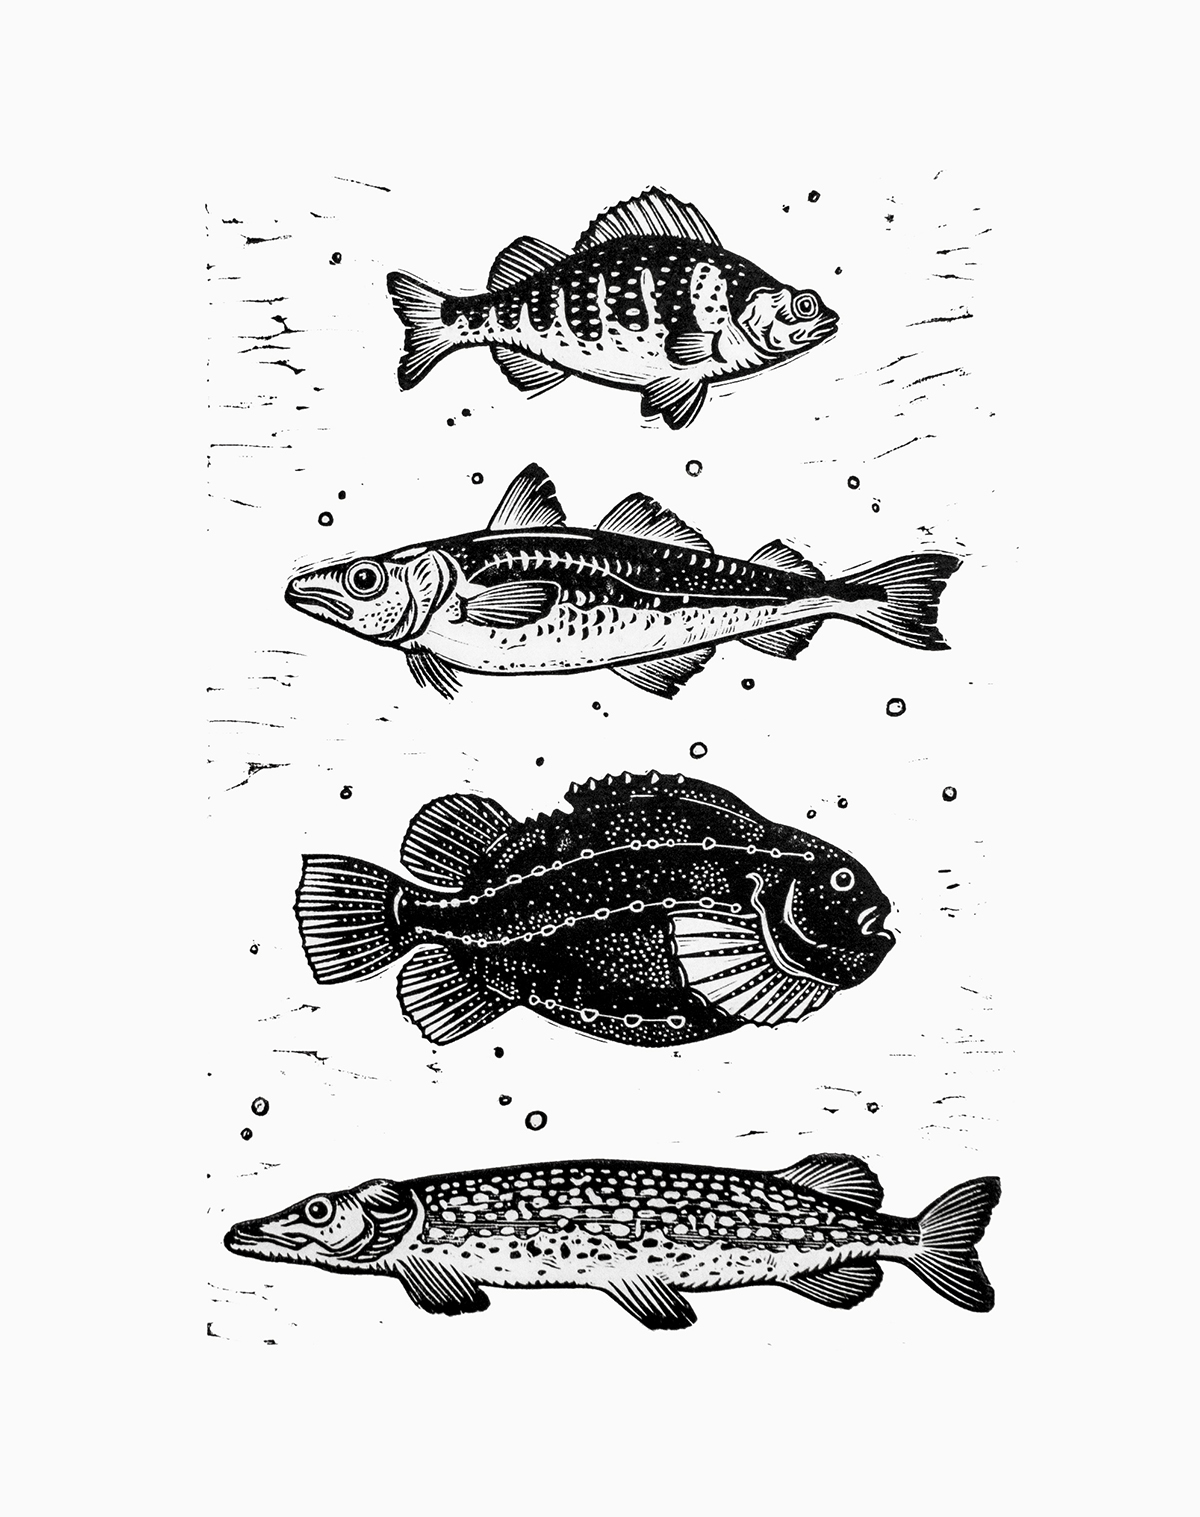 Original linocut with four typical Swedish fishes: abborre (European pirch), alaska pollock/torskfisk (a kind of cod), sjurygg (lumpfish or lumpsucker) and gädda (pike).  20 x 30 cm linocut. Edition of 10. Year 2015.